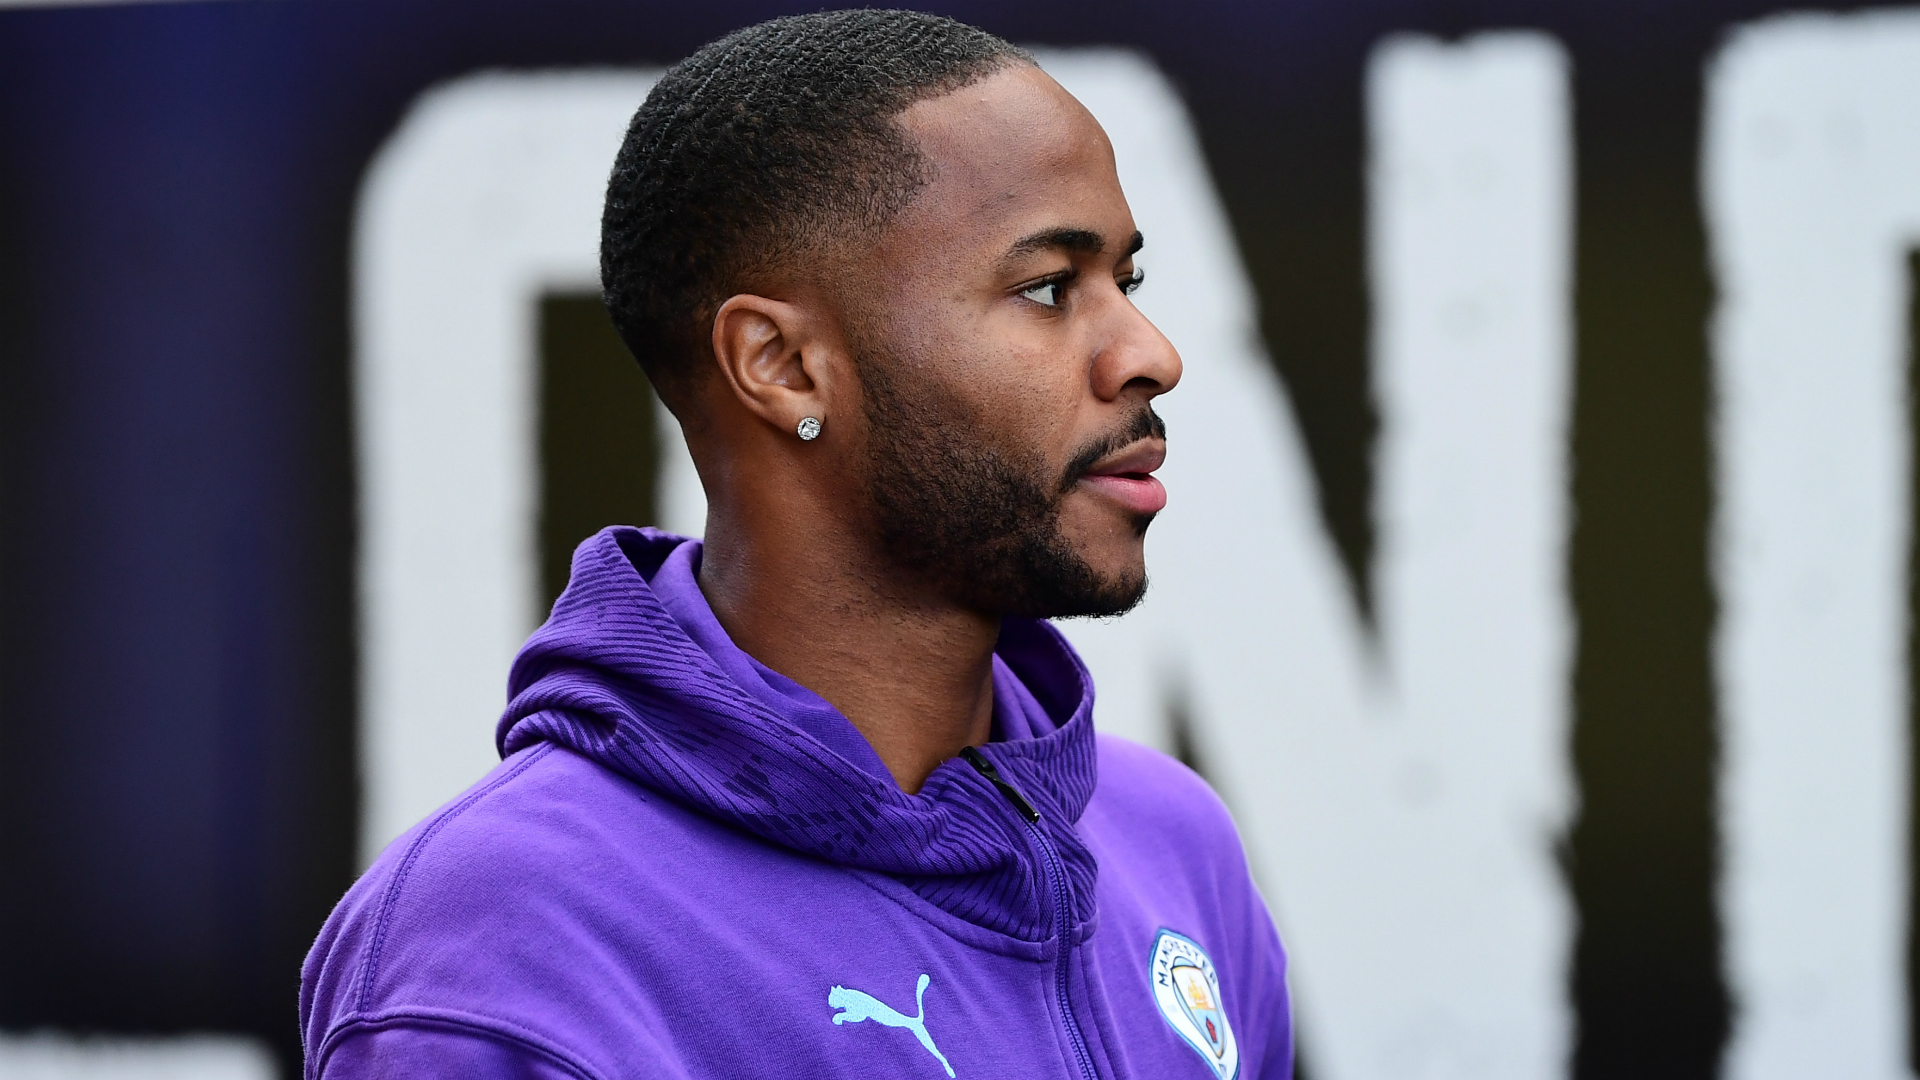 Gareth Southgate could have appeared weak had he not acted on the Raheem Sterling-Joe Gomez incident, Gary Neville says.